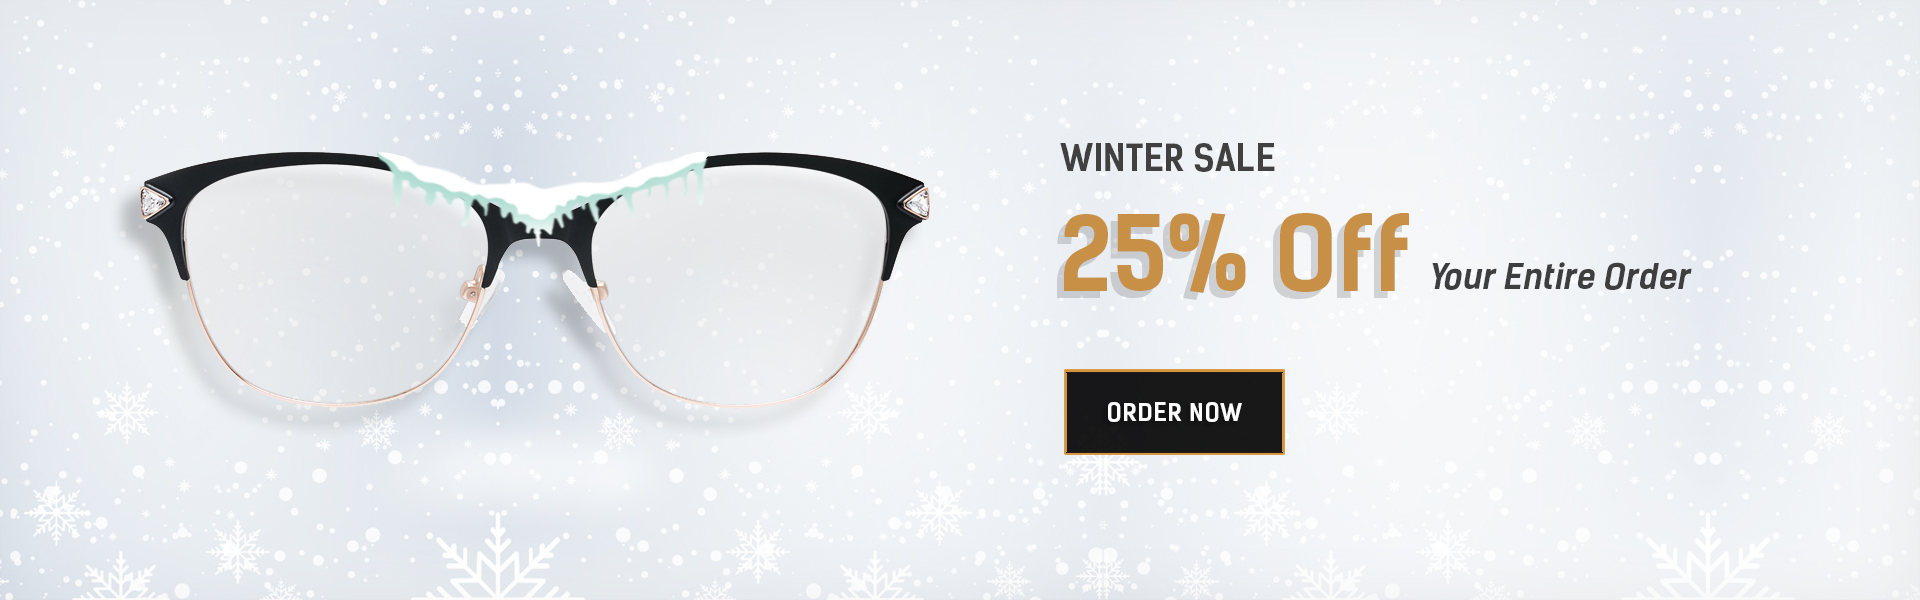 prescription glasses winter sale 24 hours delivery